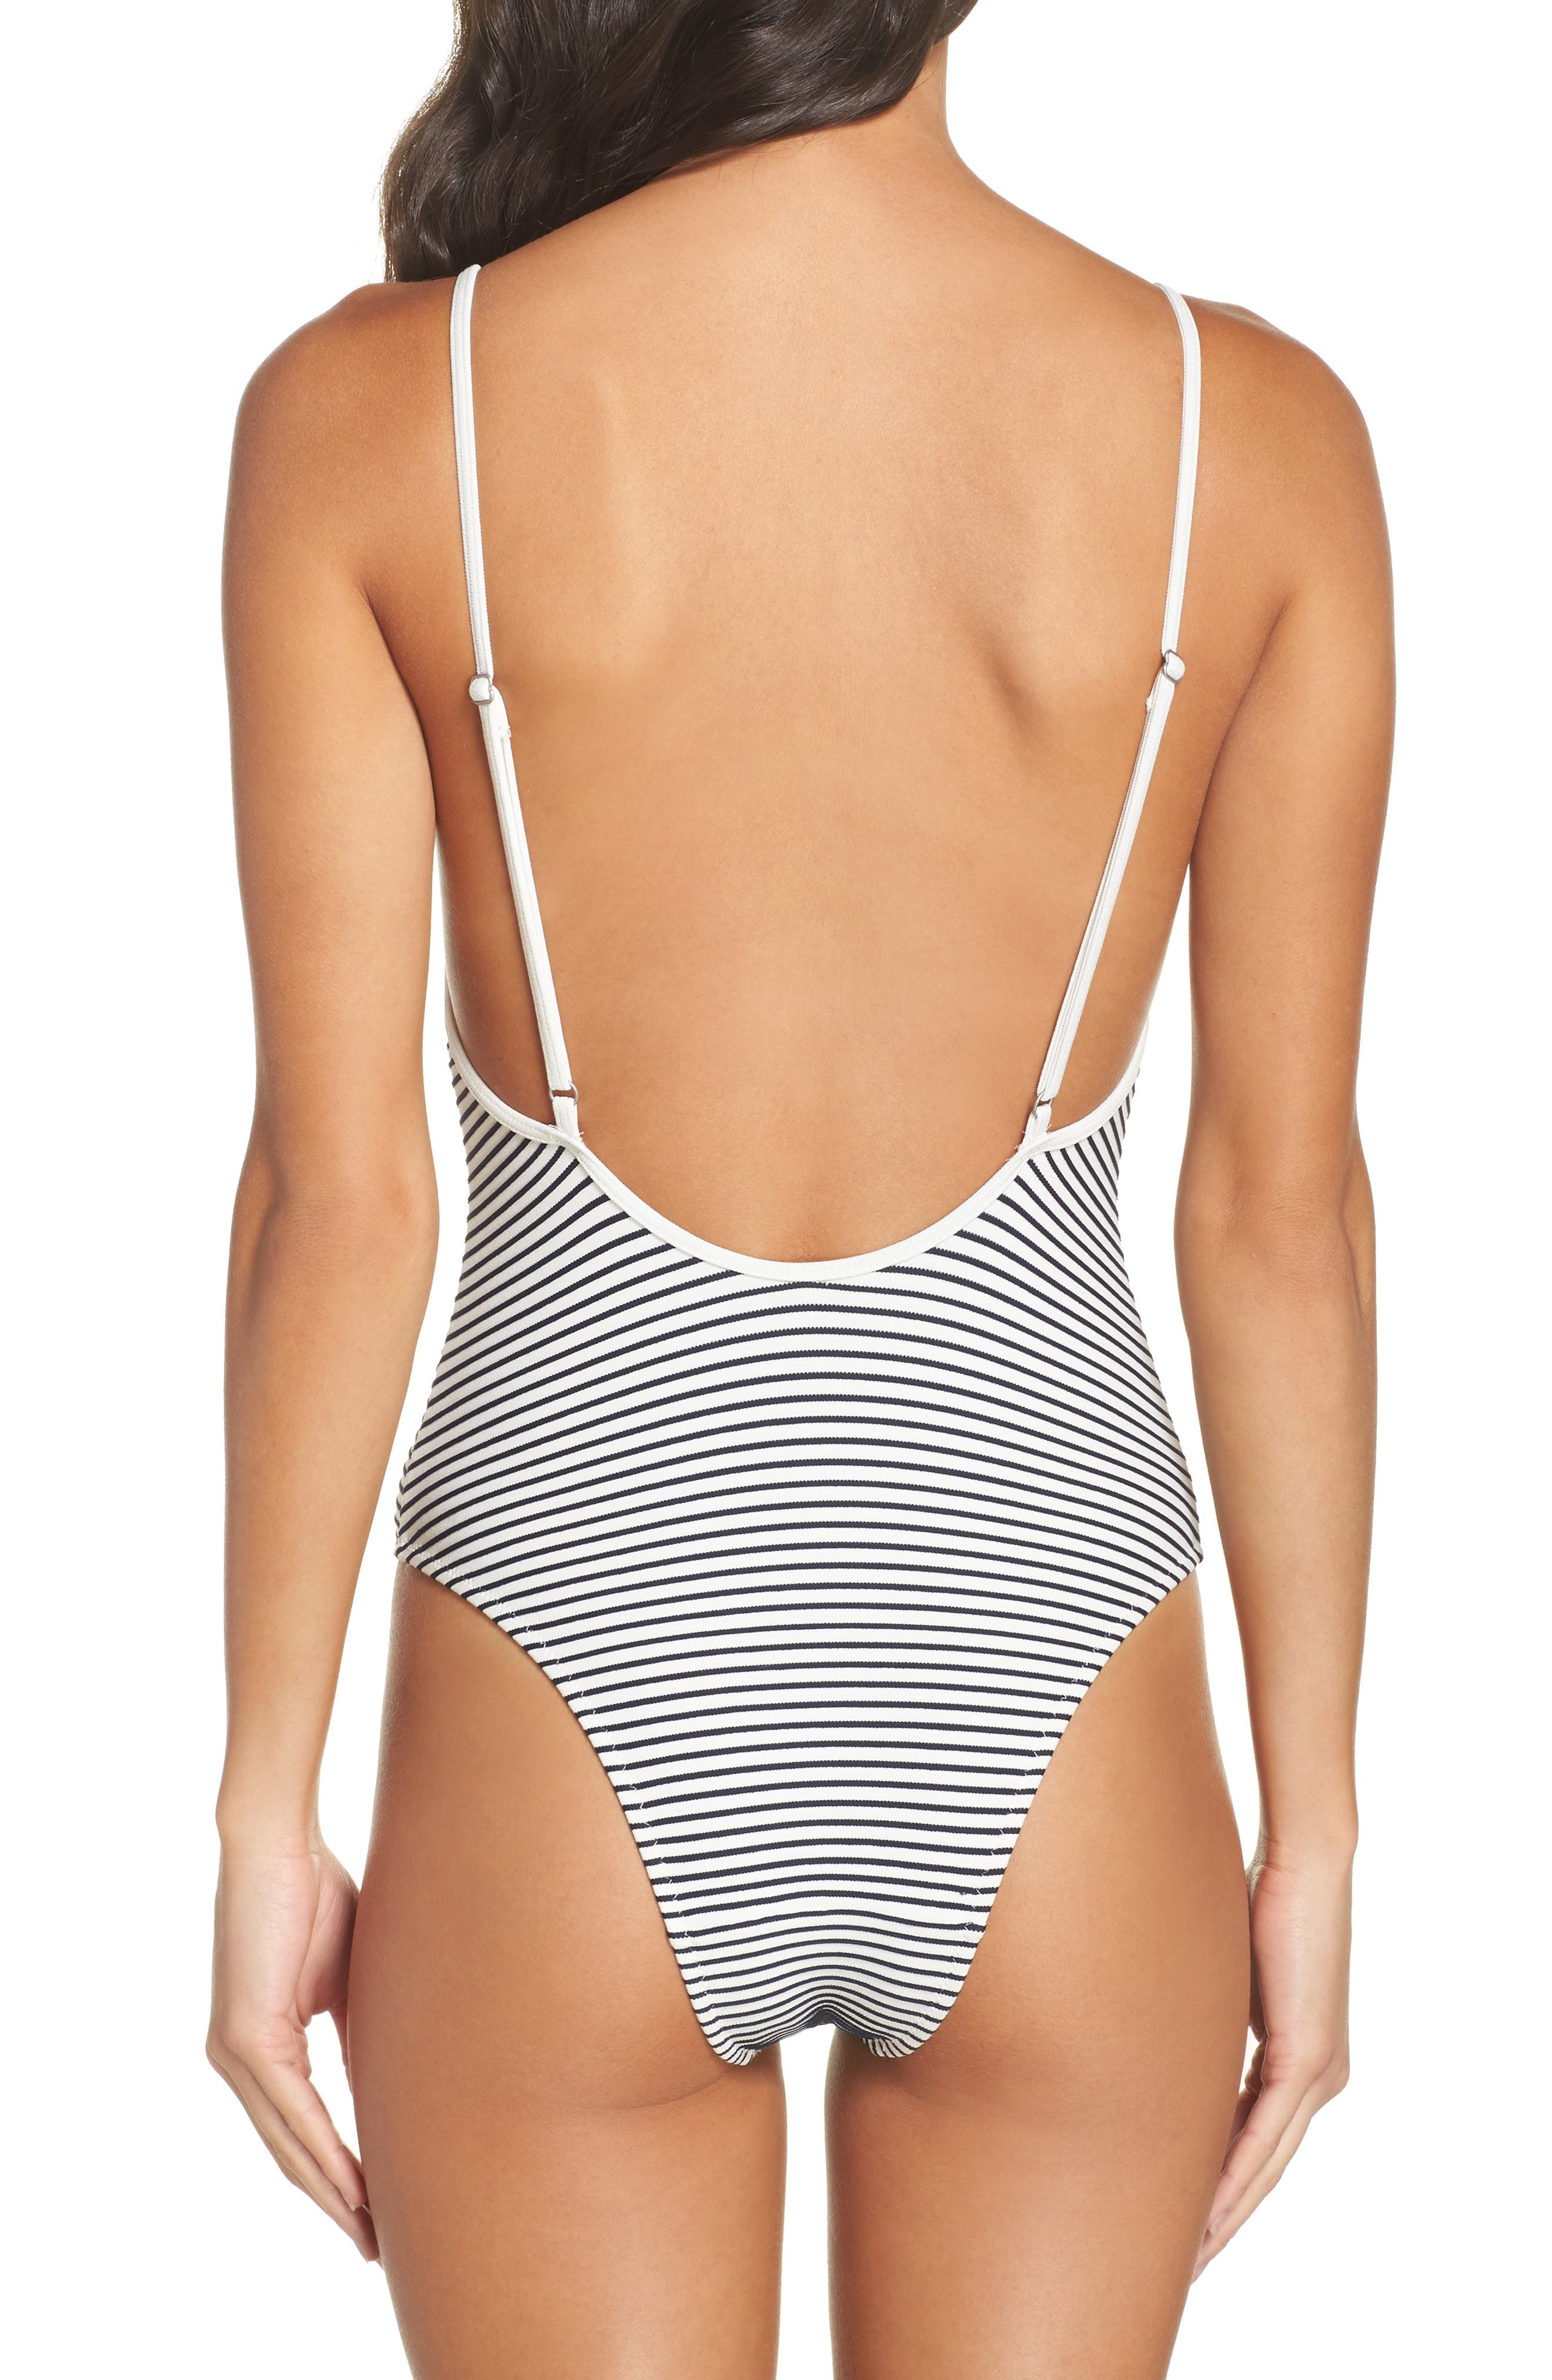 Alternate Image 2  - Striped & Solid Chelsea One-Piece Swimsuit